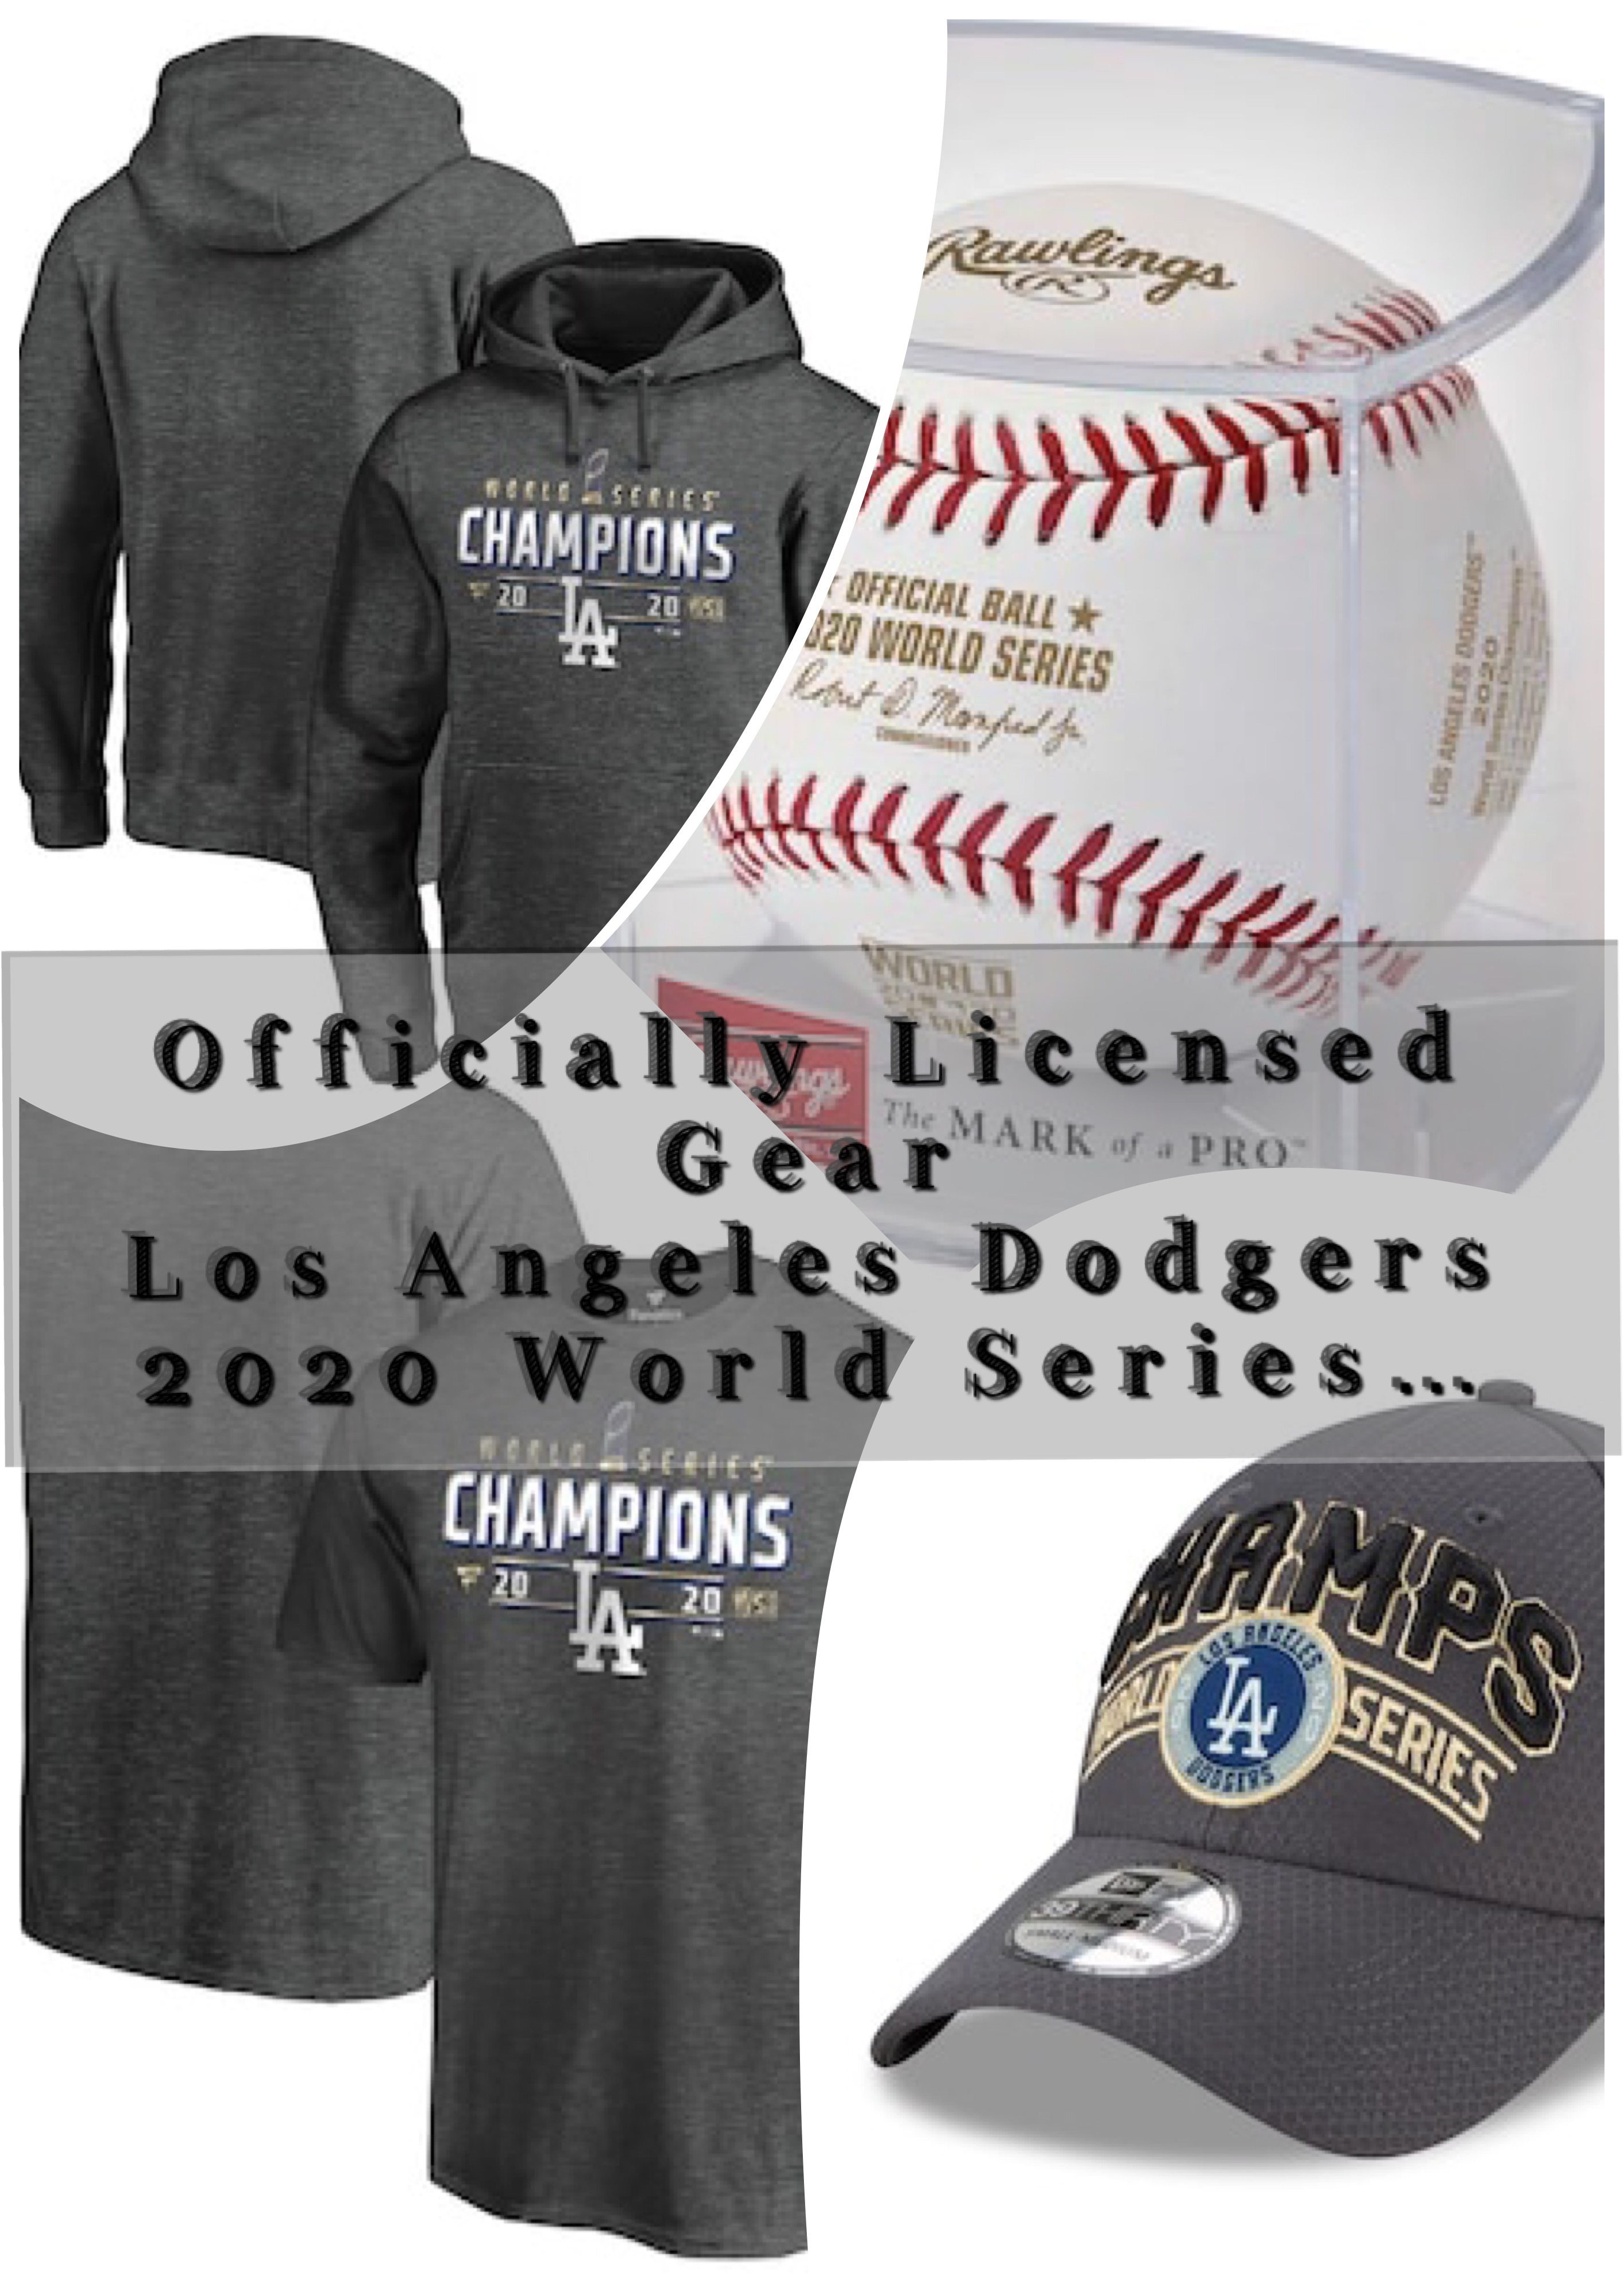 2020 World Series Champions Los Angeles Dodgers Gears